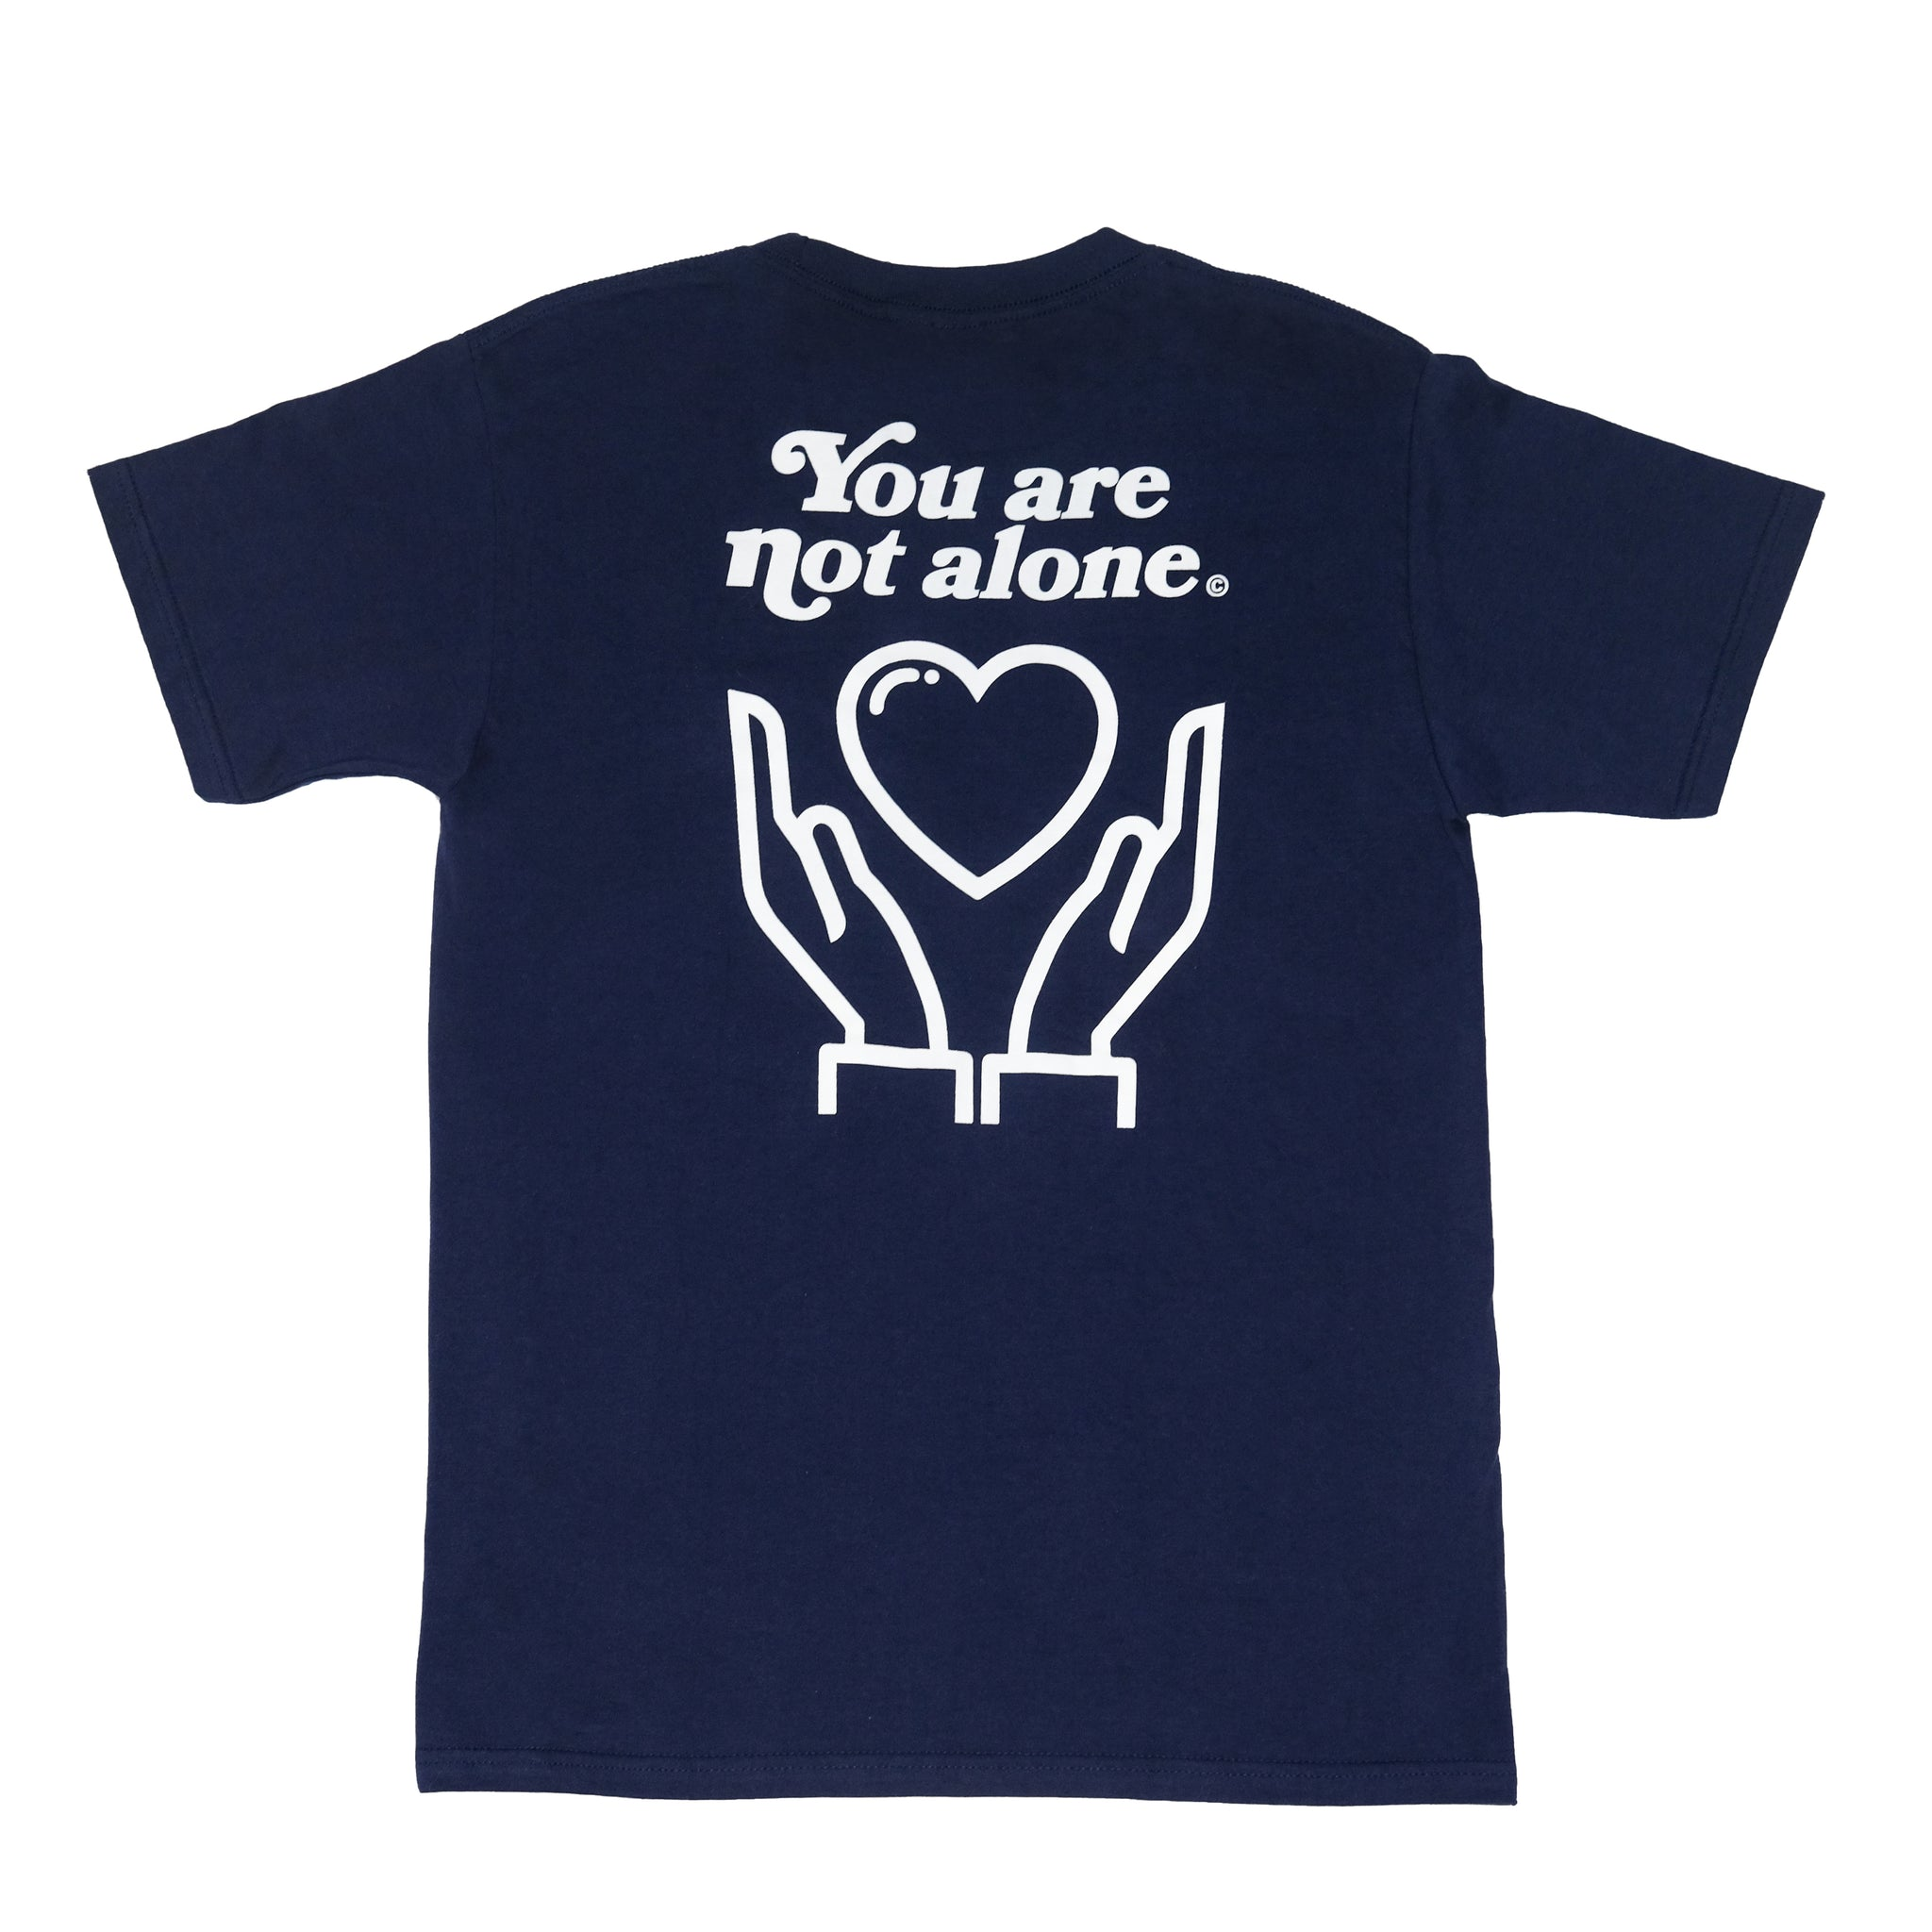 You Are Not Alone Tee (Navy)